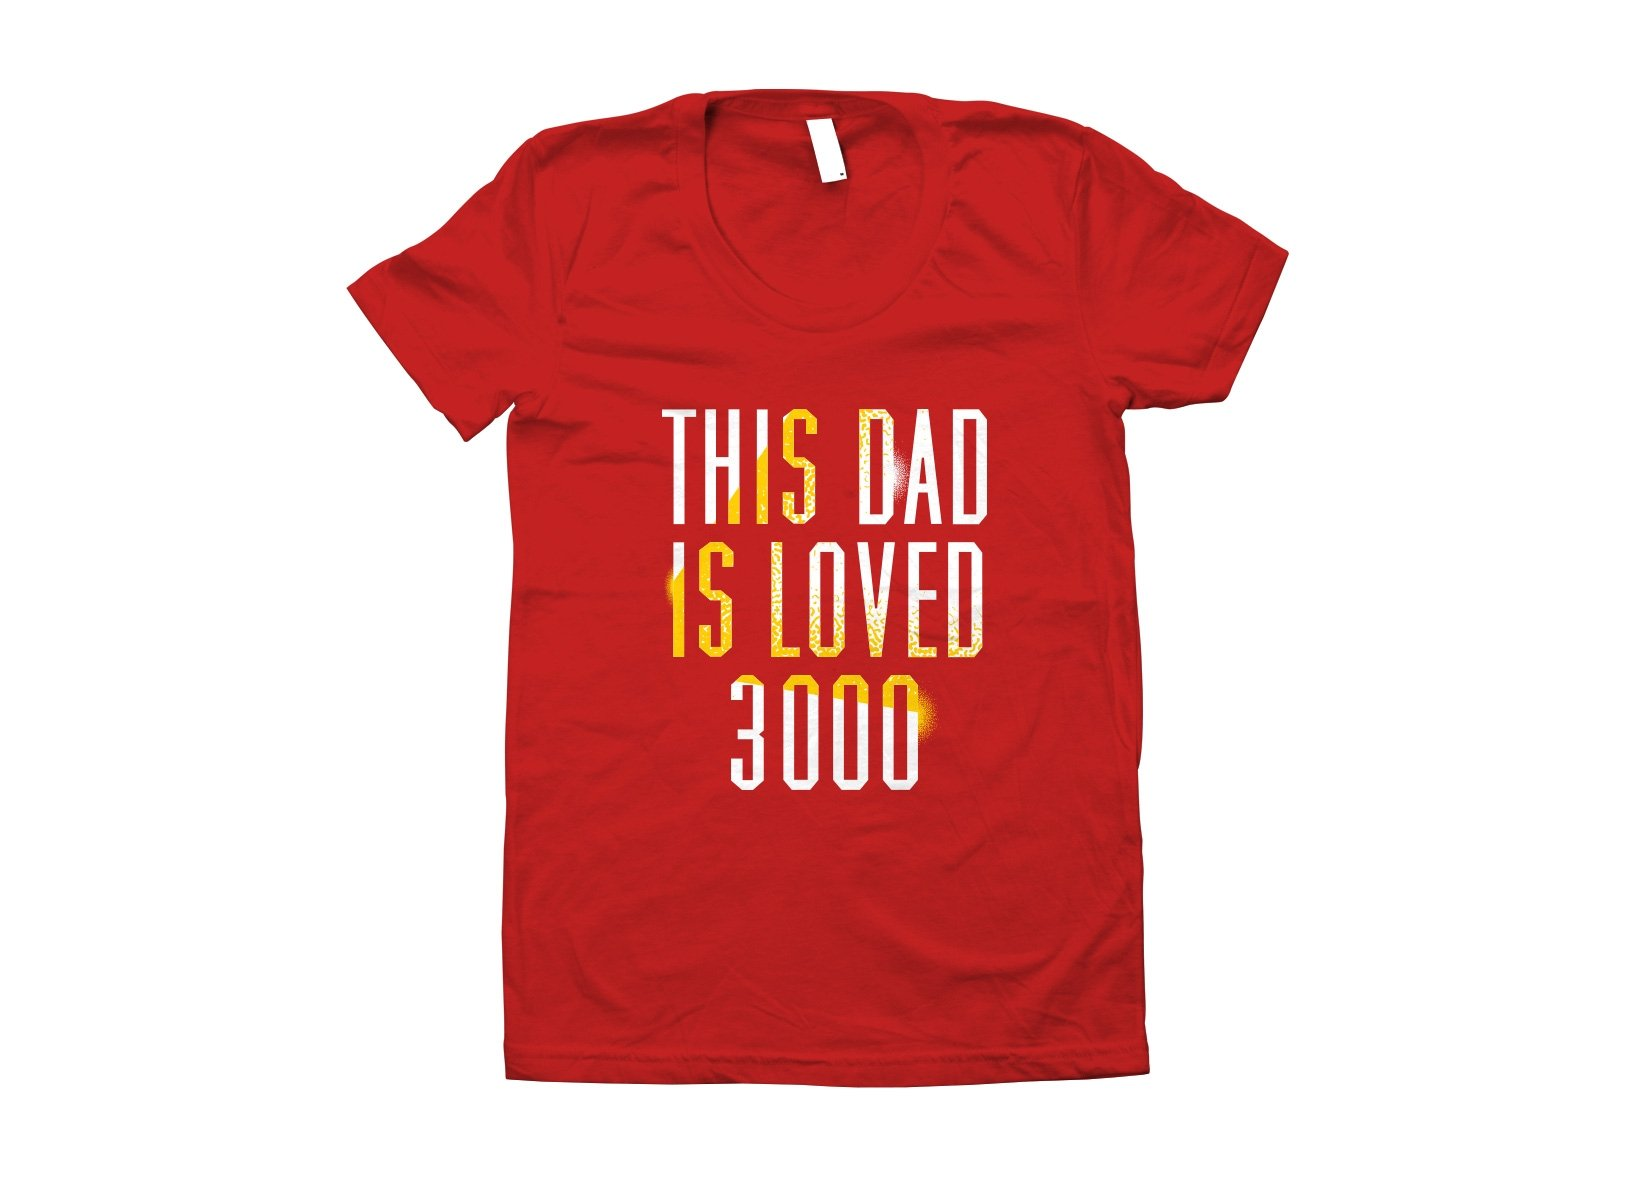 This Dad Is Loved 3000 on Juniors T-Shirt